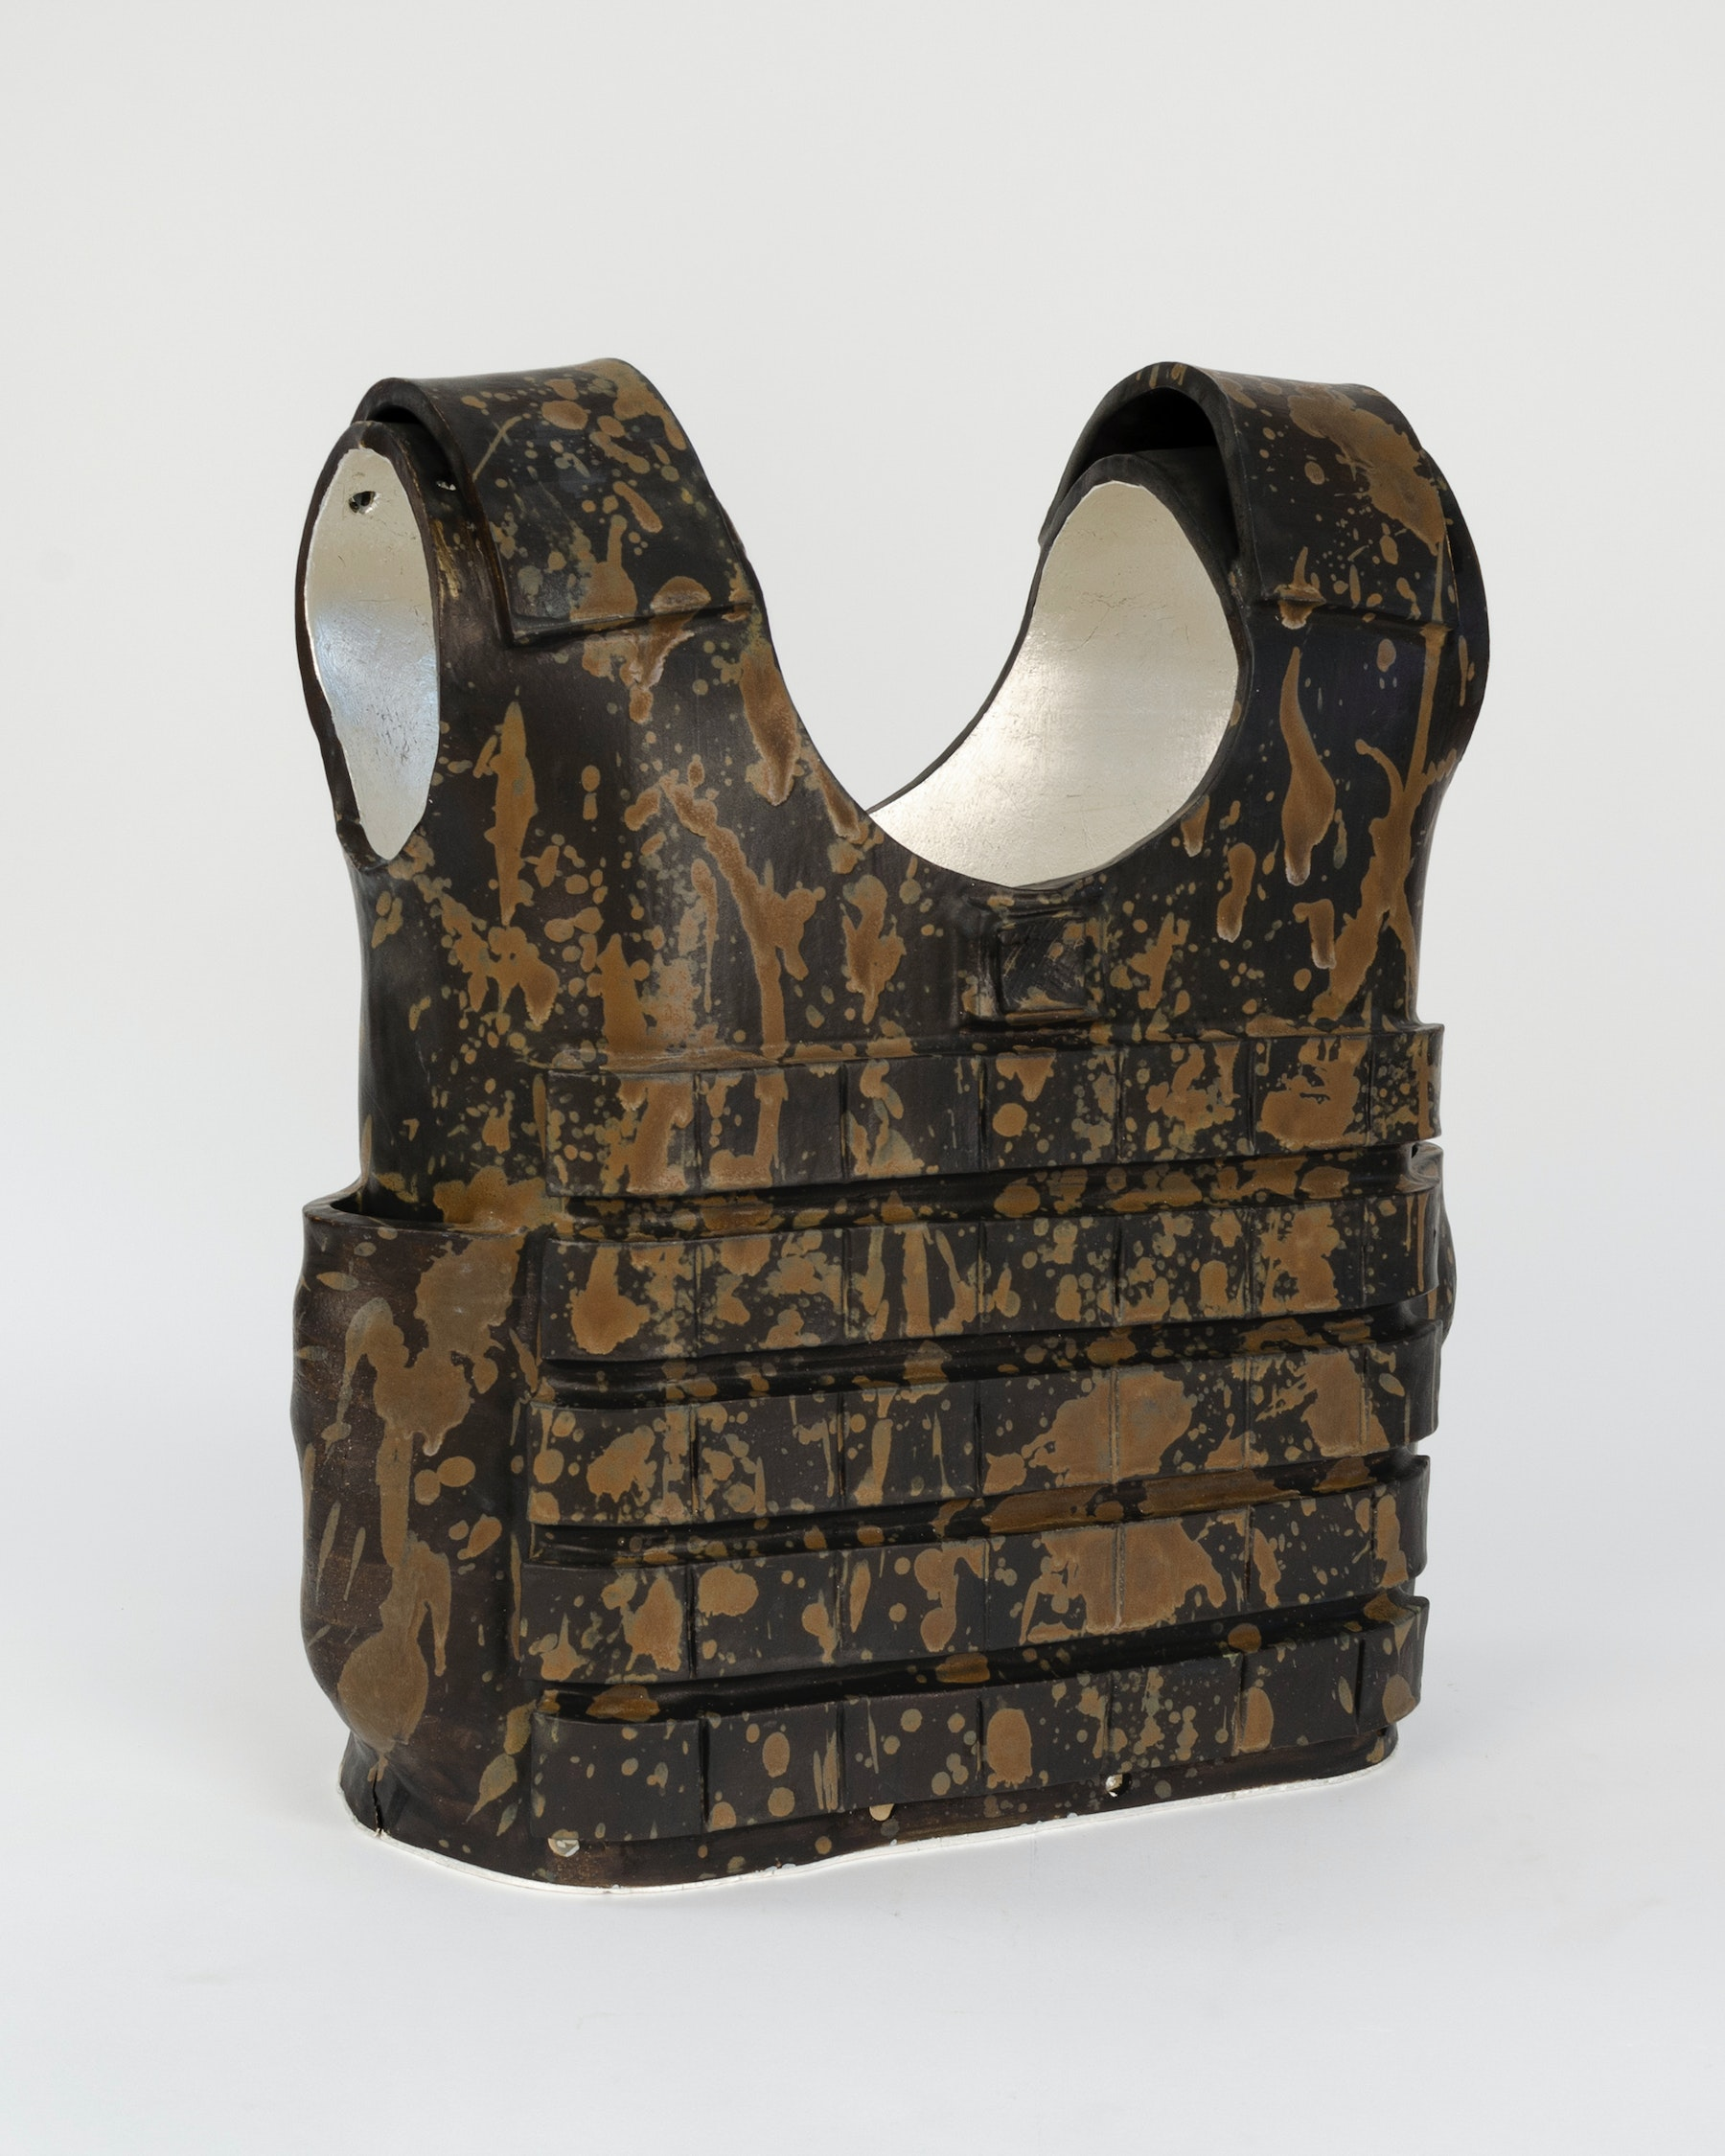 """Liz Glynn """"Decorative Protection (For What May Come),"""" 2020 Glazed ceramic with silver leaf 17 x 15.25 x 7"""" [HxWxD] (43.18 x 38.74 x 17.78 cm) Inventory #GLY175 Courtesy of the artist and Vielmetter Los Angeles"""